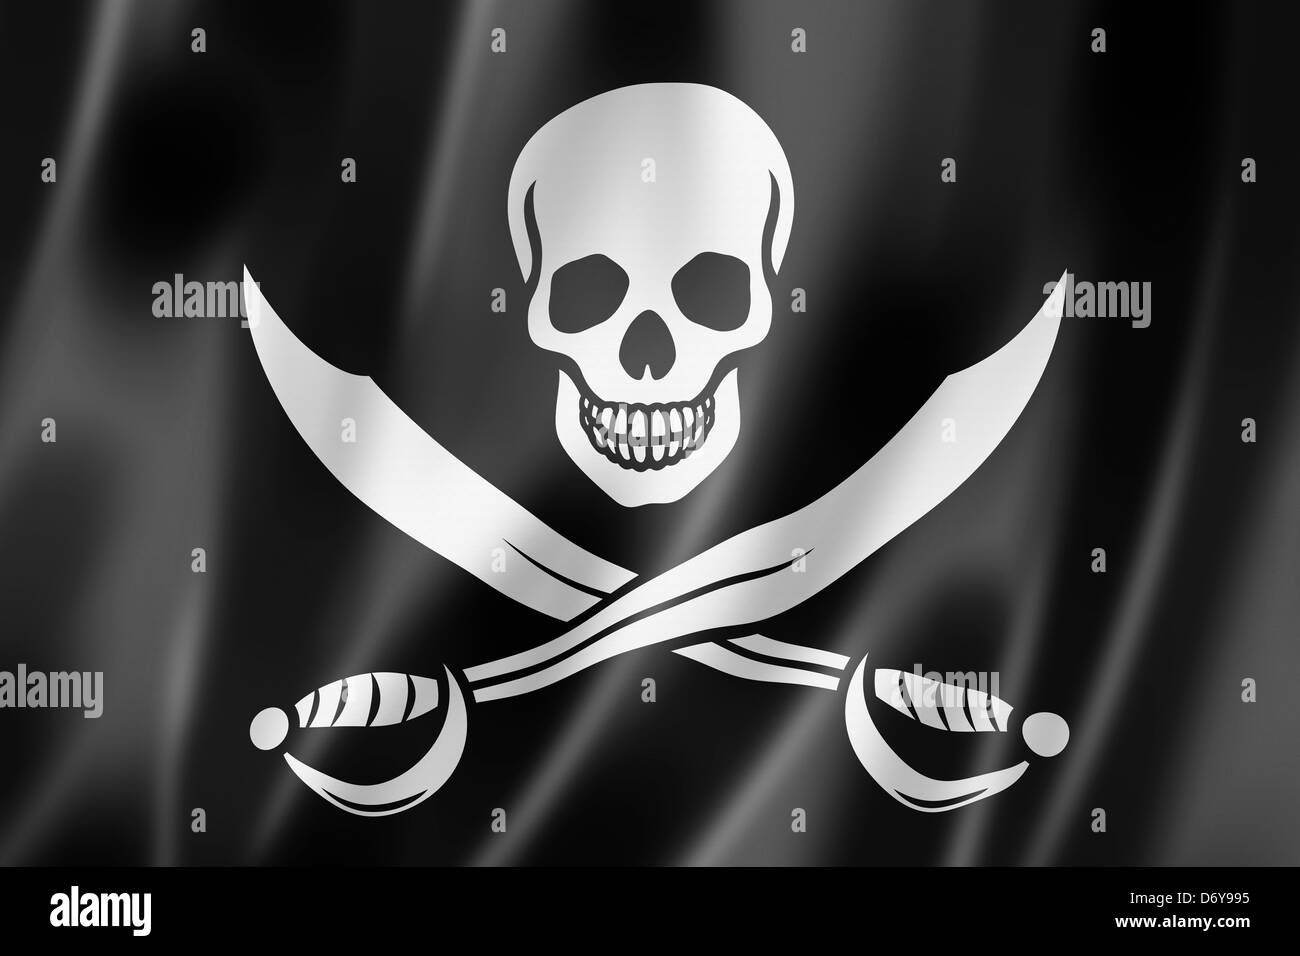 Pirate Flag Black And White Stock Photos Images Alamy